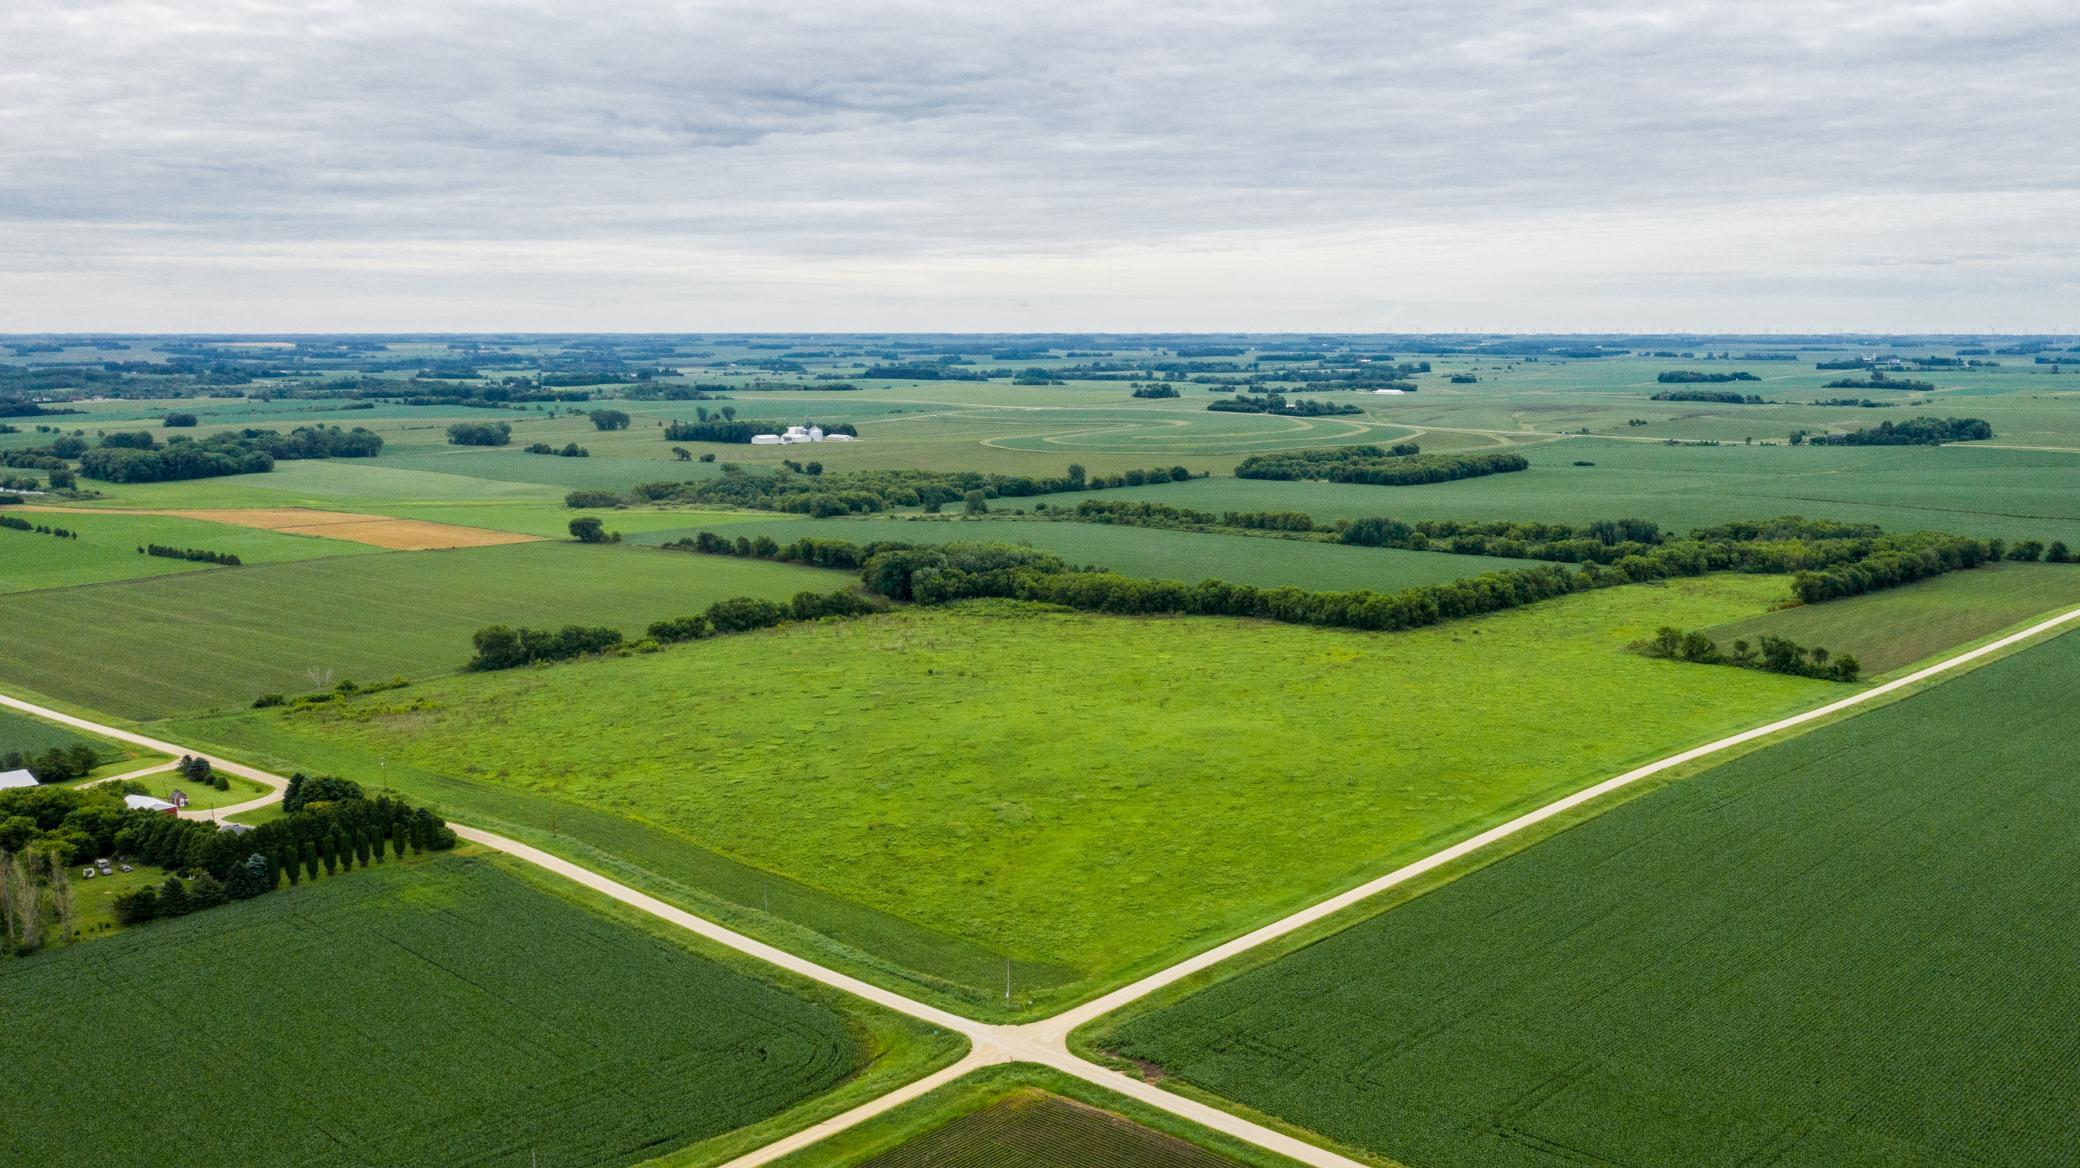 TBD 720th Street - Hayfield Property Photo - Vernon Twp, MN real estate listing